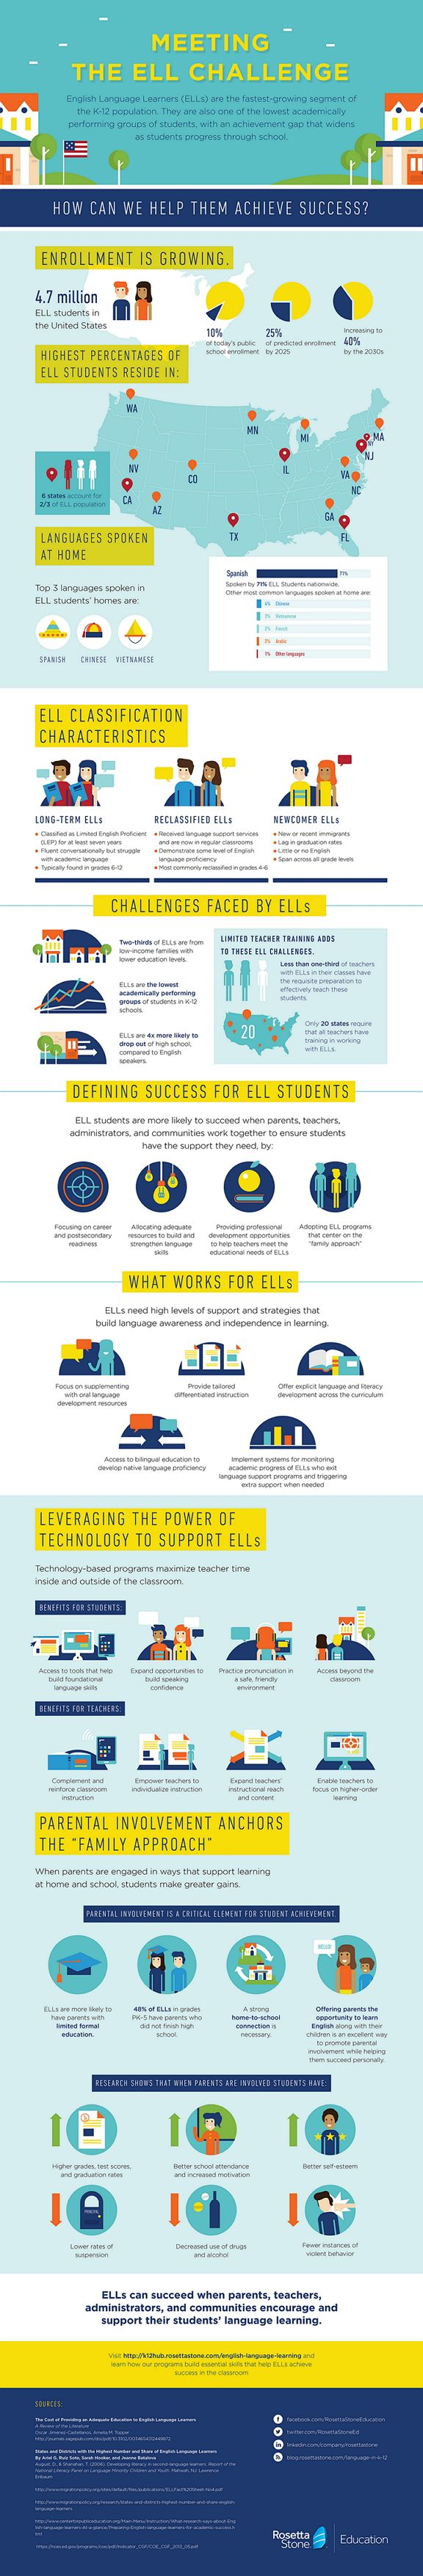 How can we help English language learners achieve success?